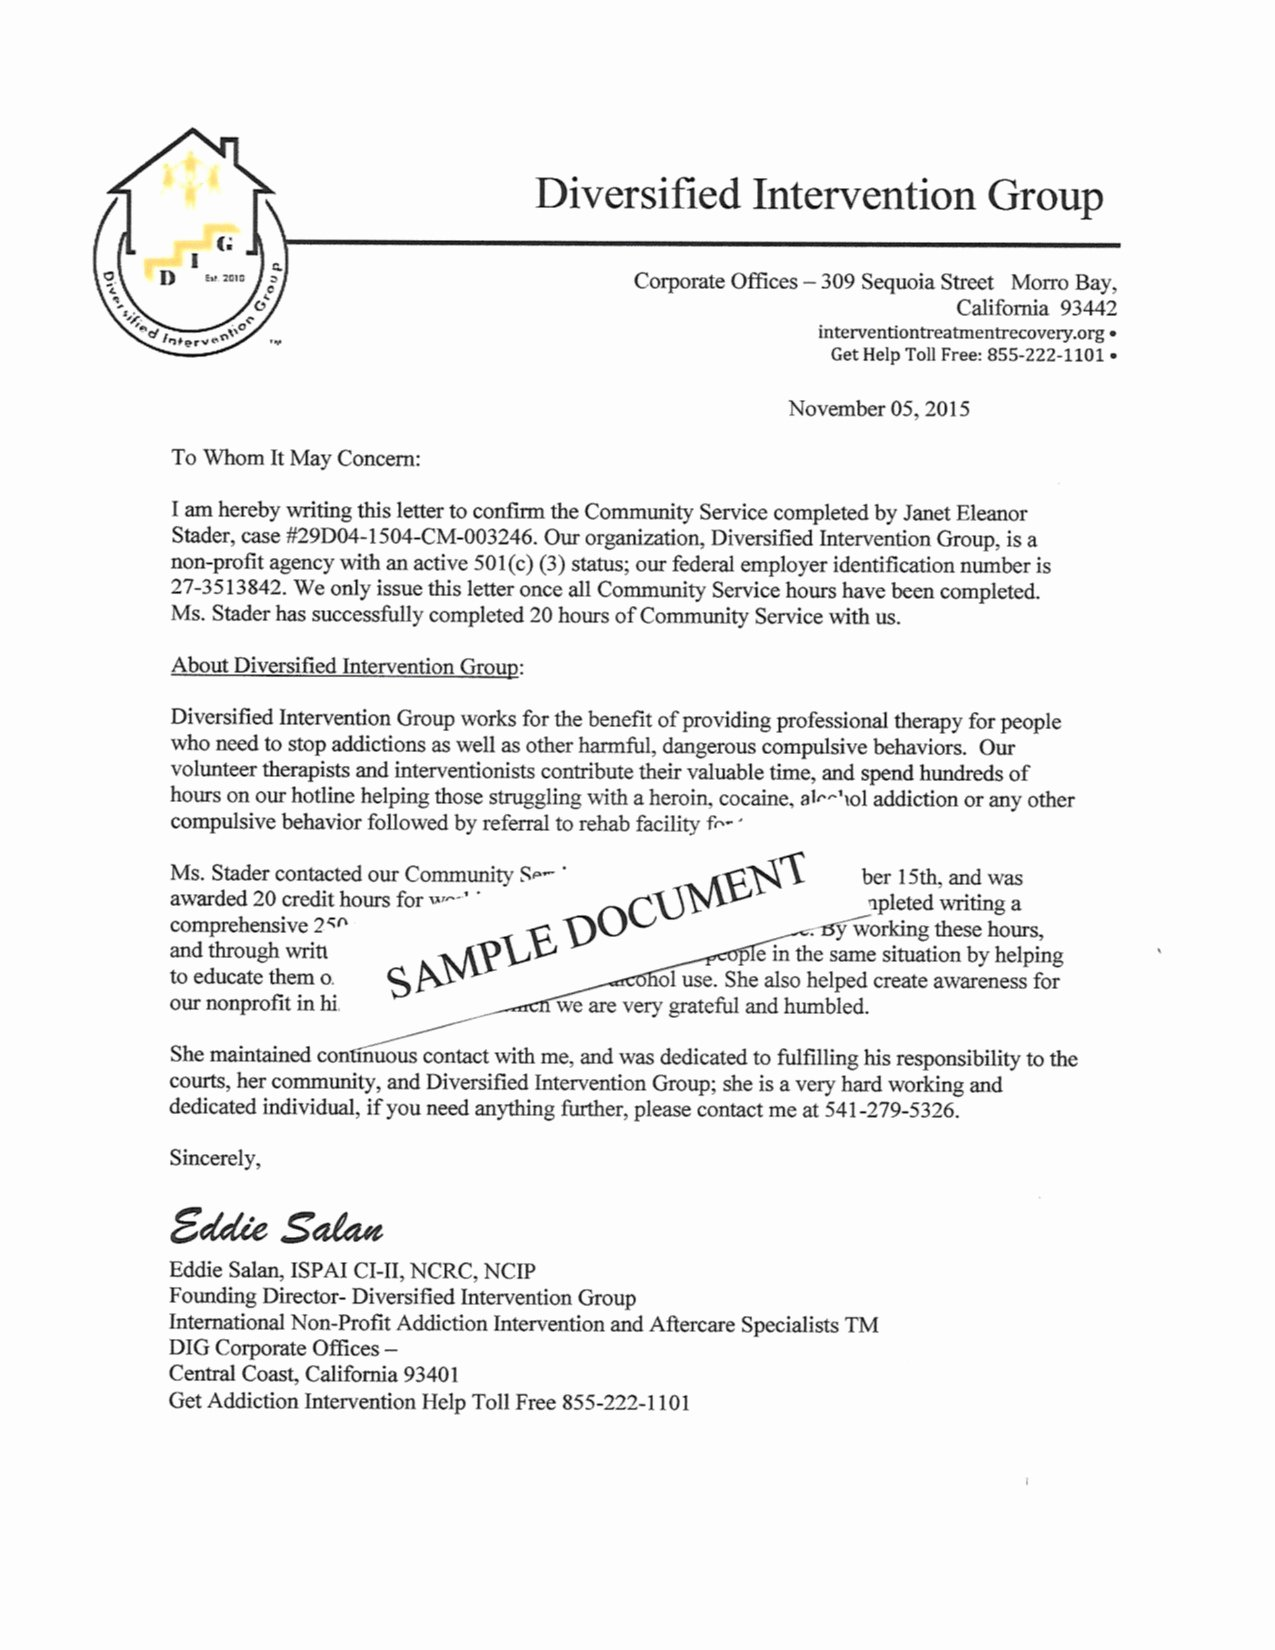 Community Service Letter Template Fresh Template for Munity Service Hours Letter Samples